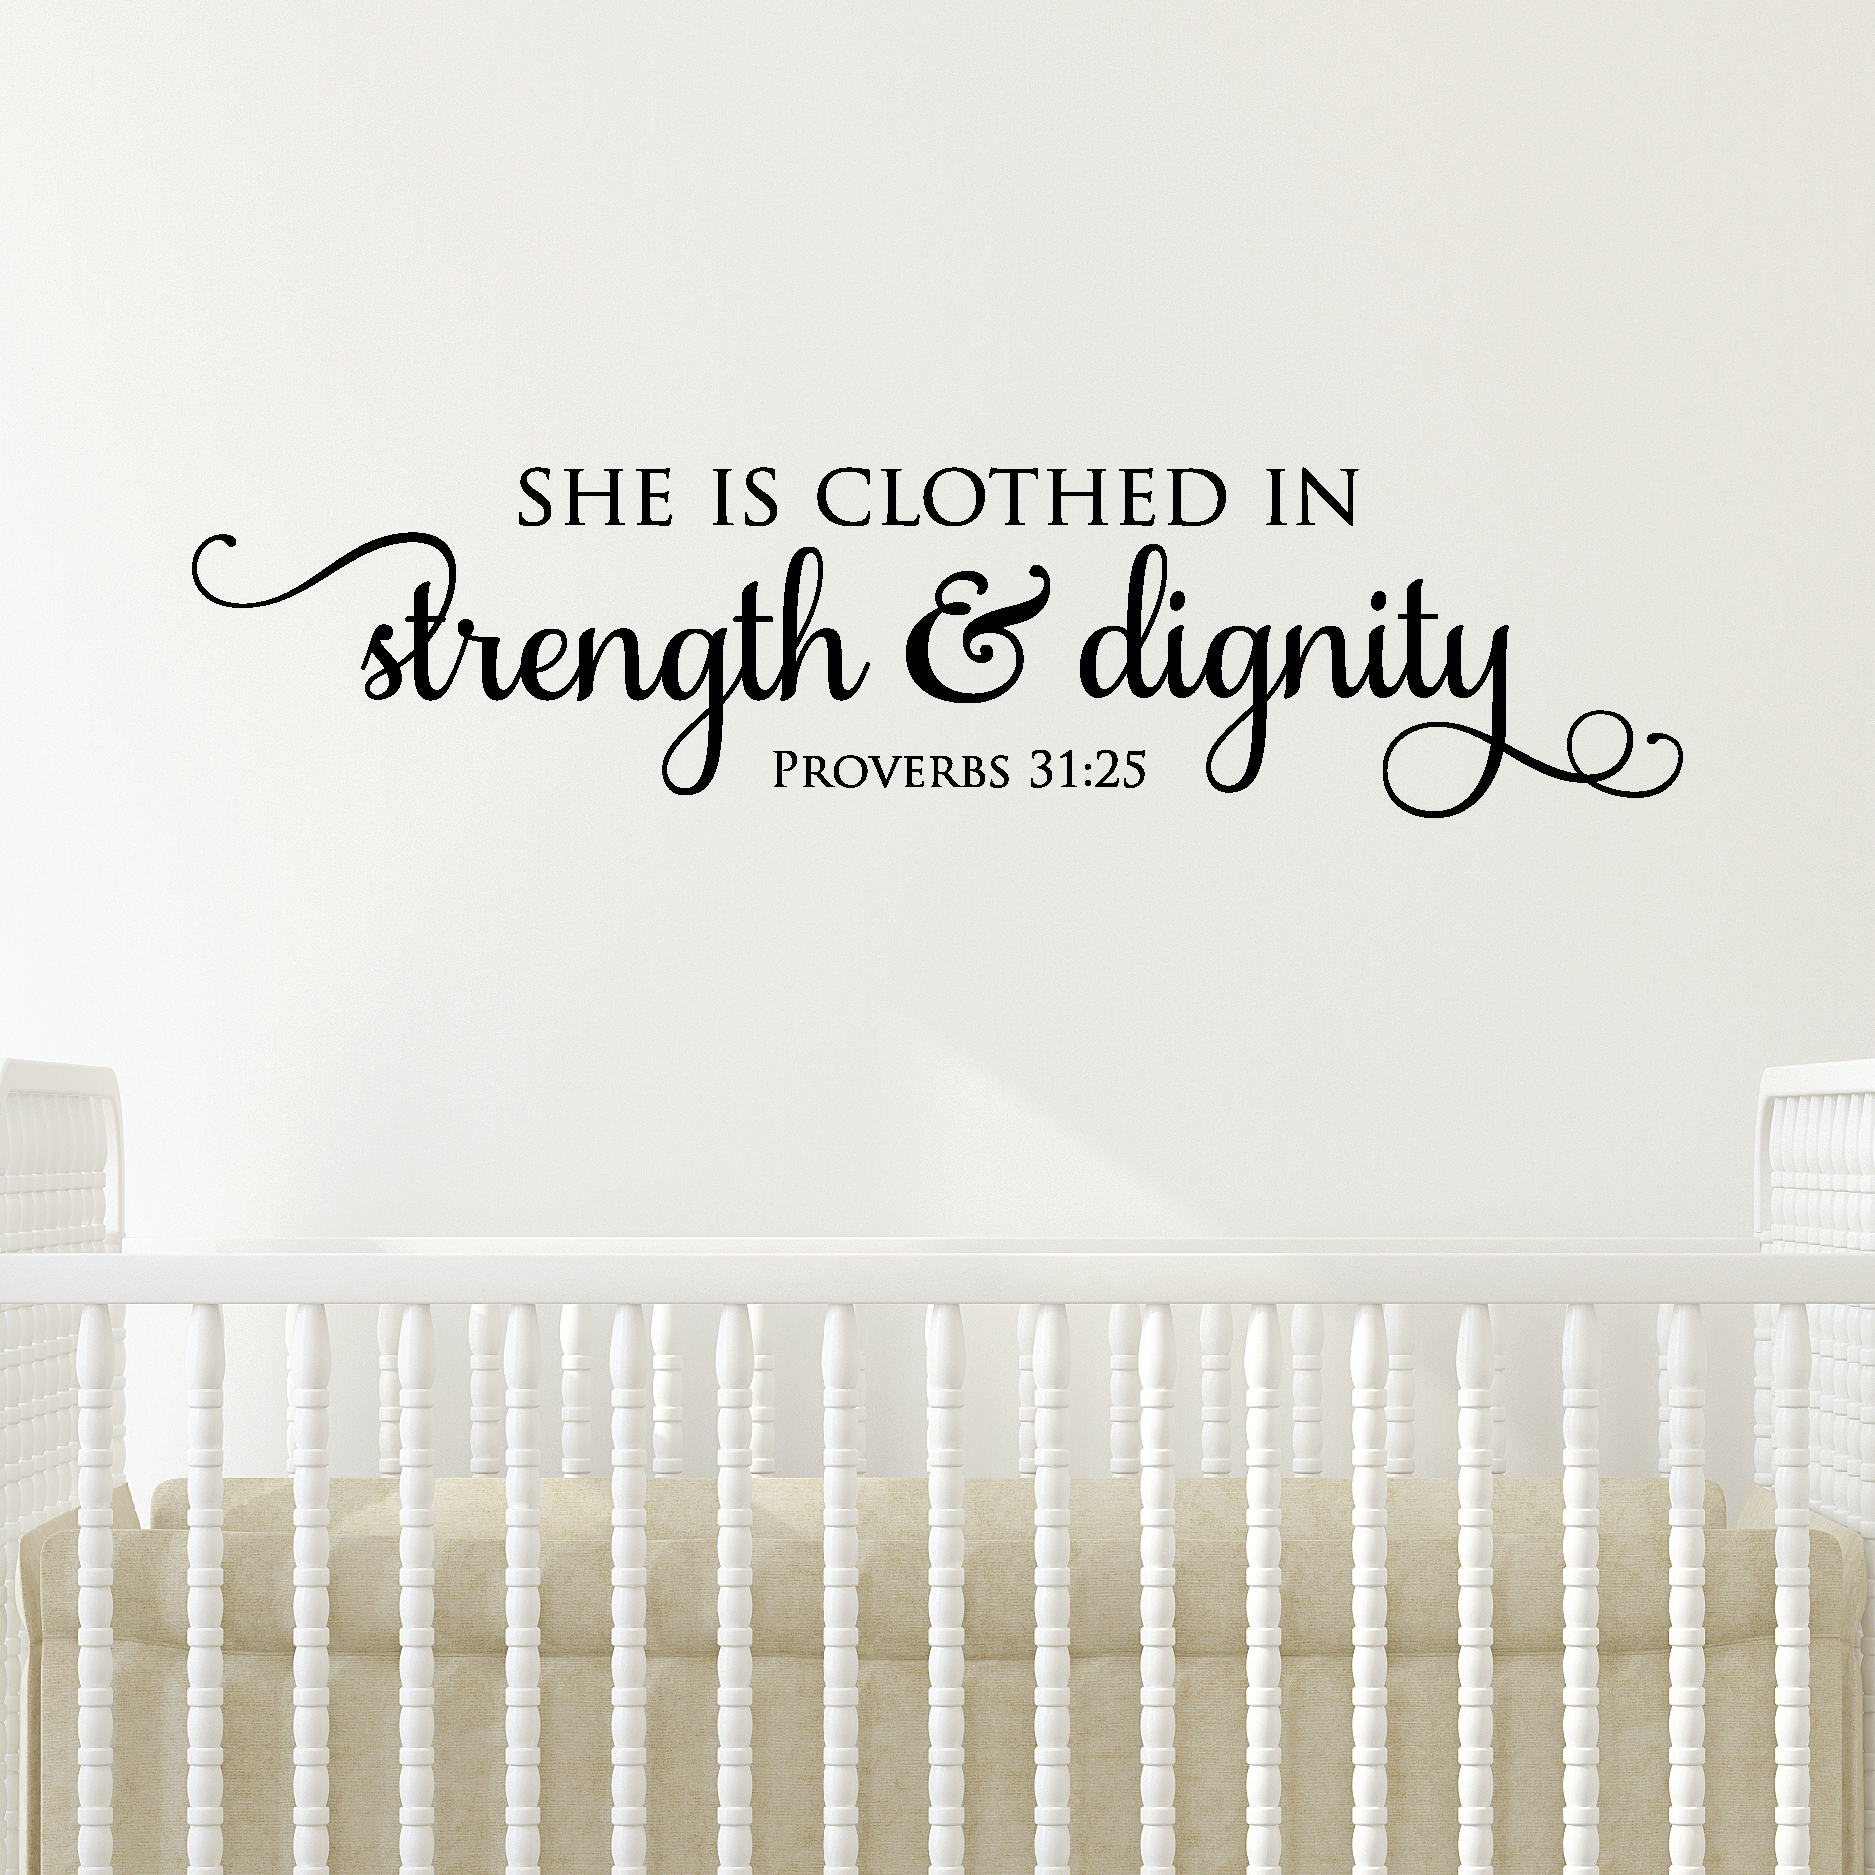 Symbols For Strength And Dignity: Strength & Dignity Wall Quotes™ Decal